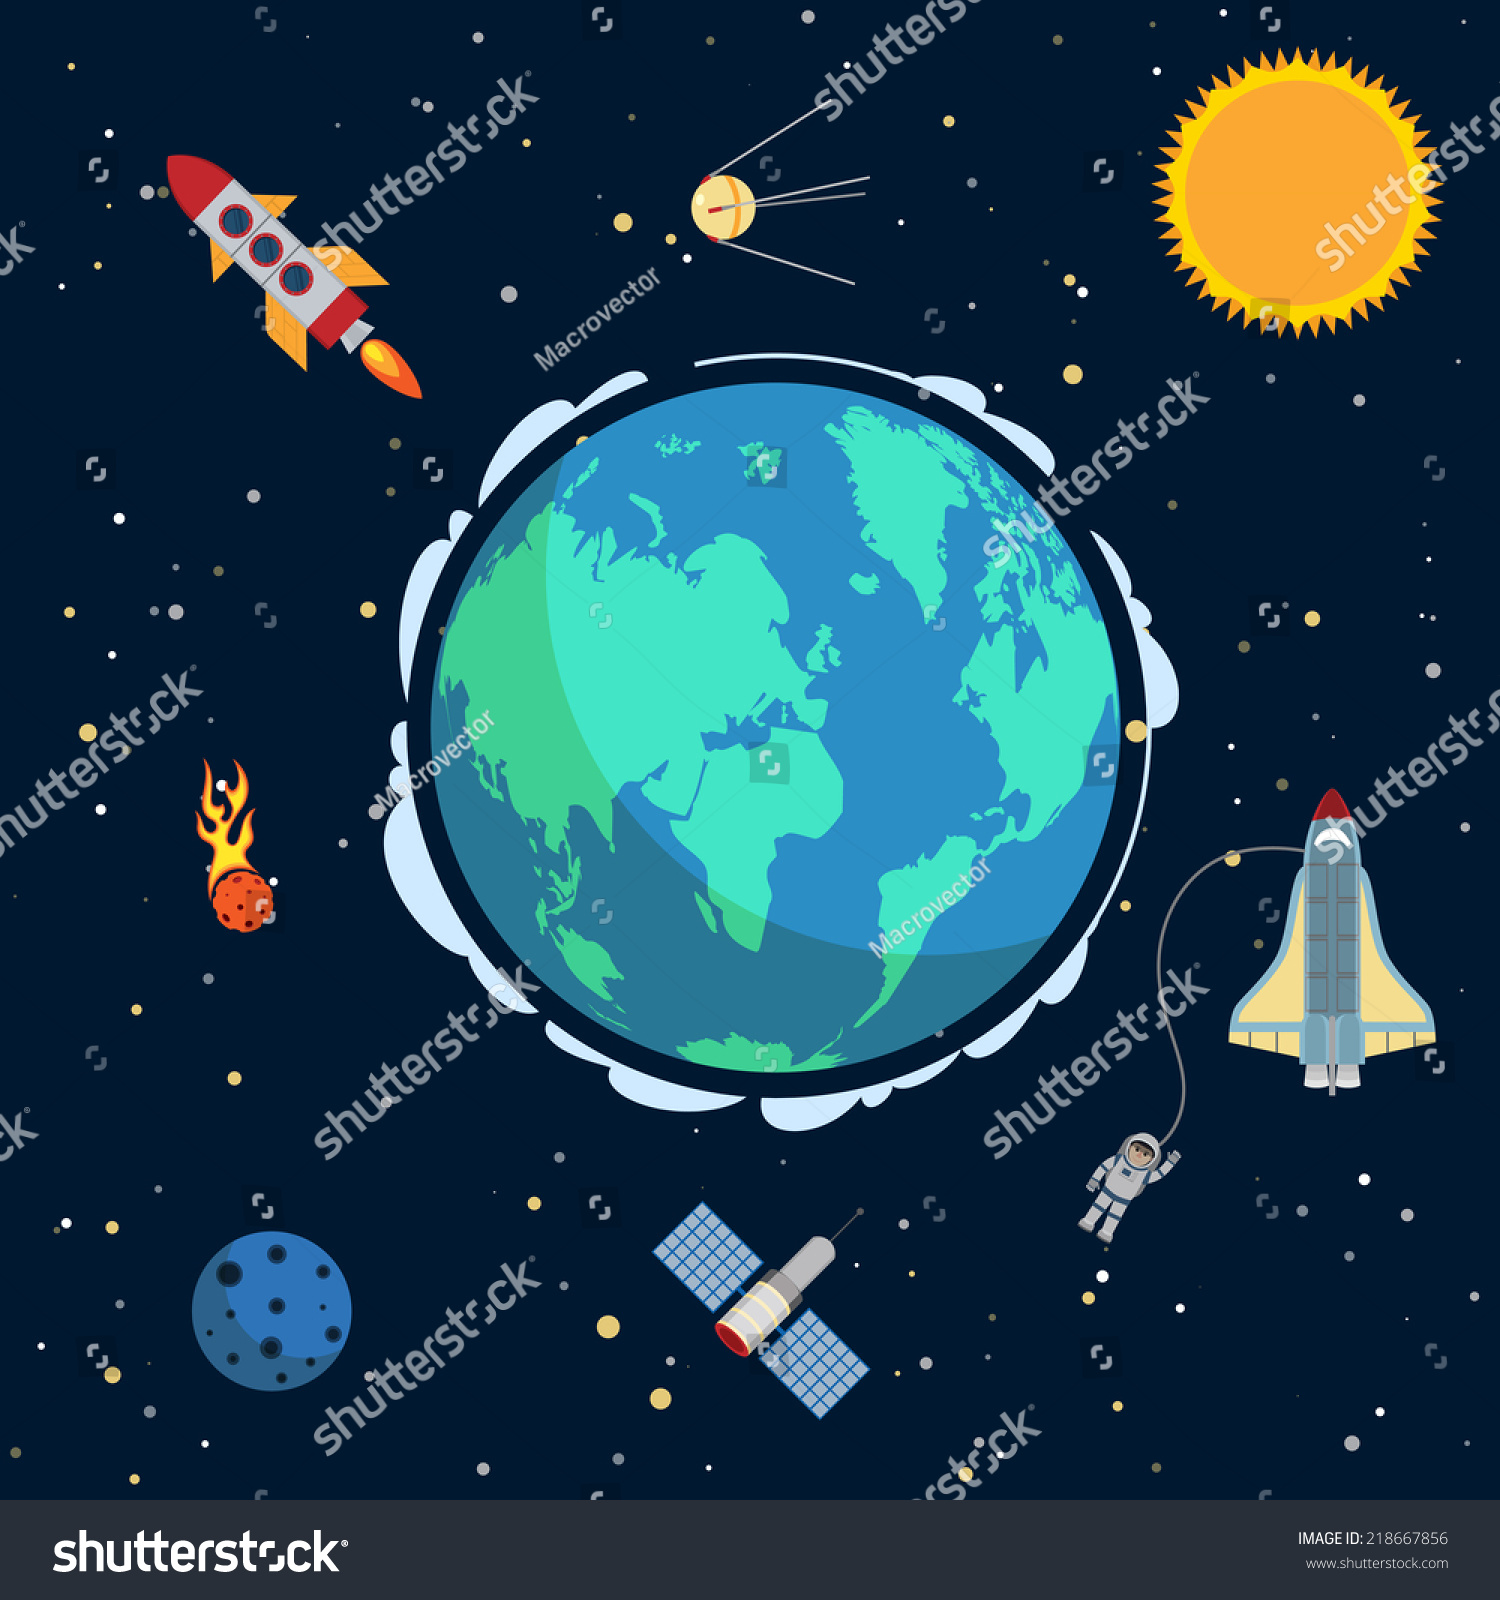 Earth space poster globe spacecrafts satellites stock for Outer space poster design